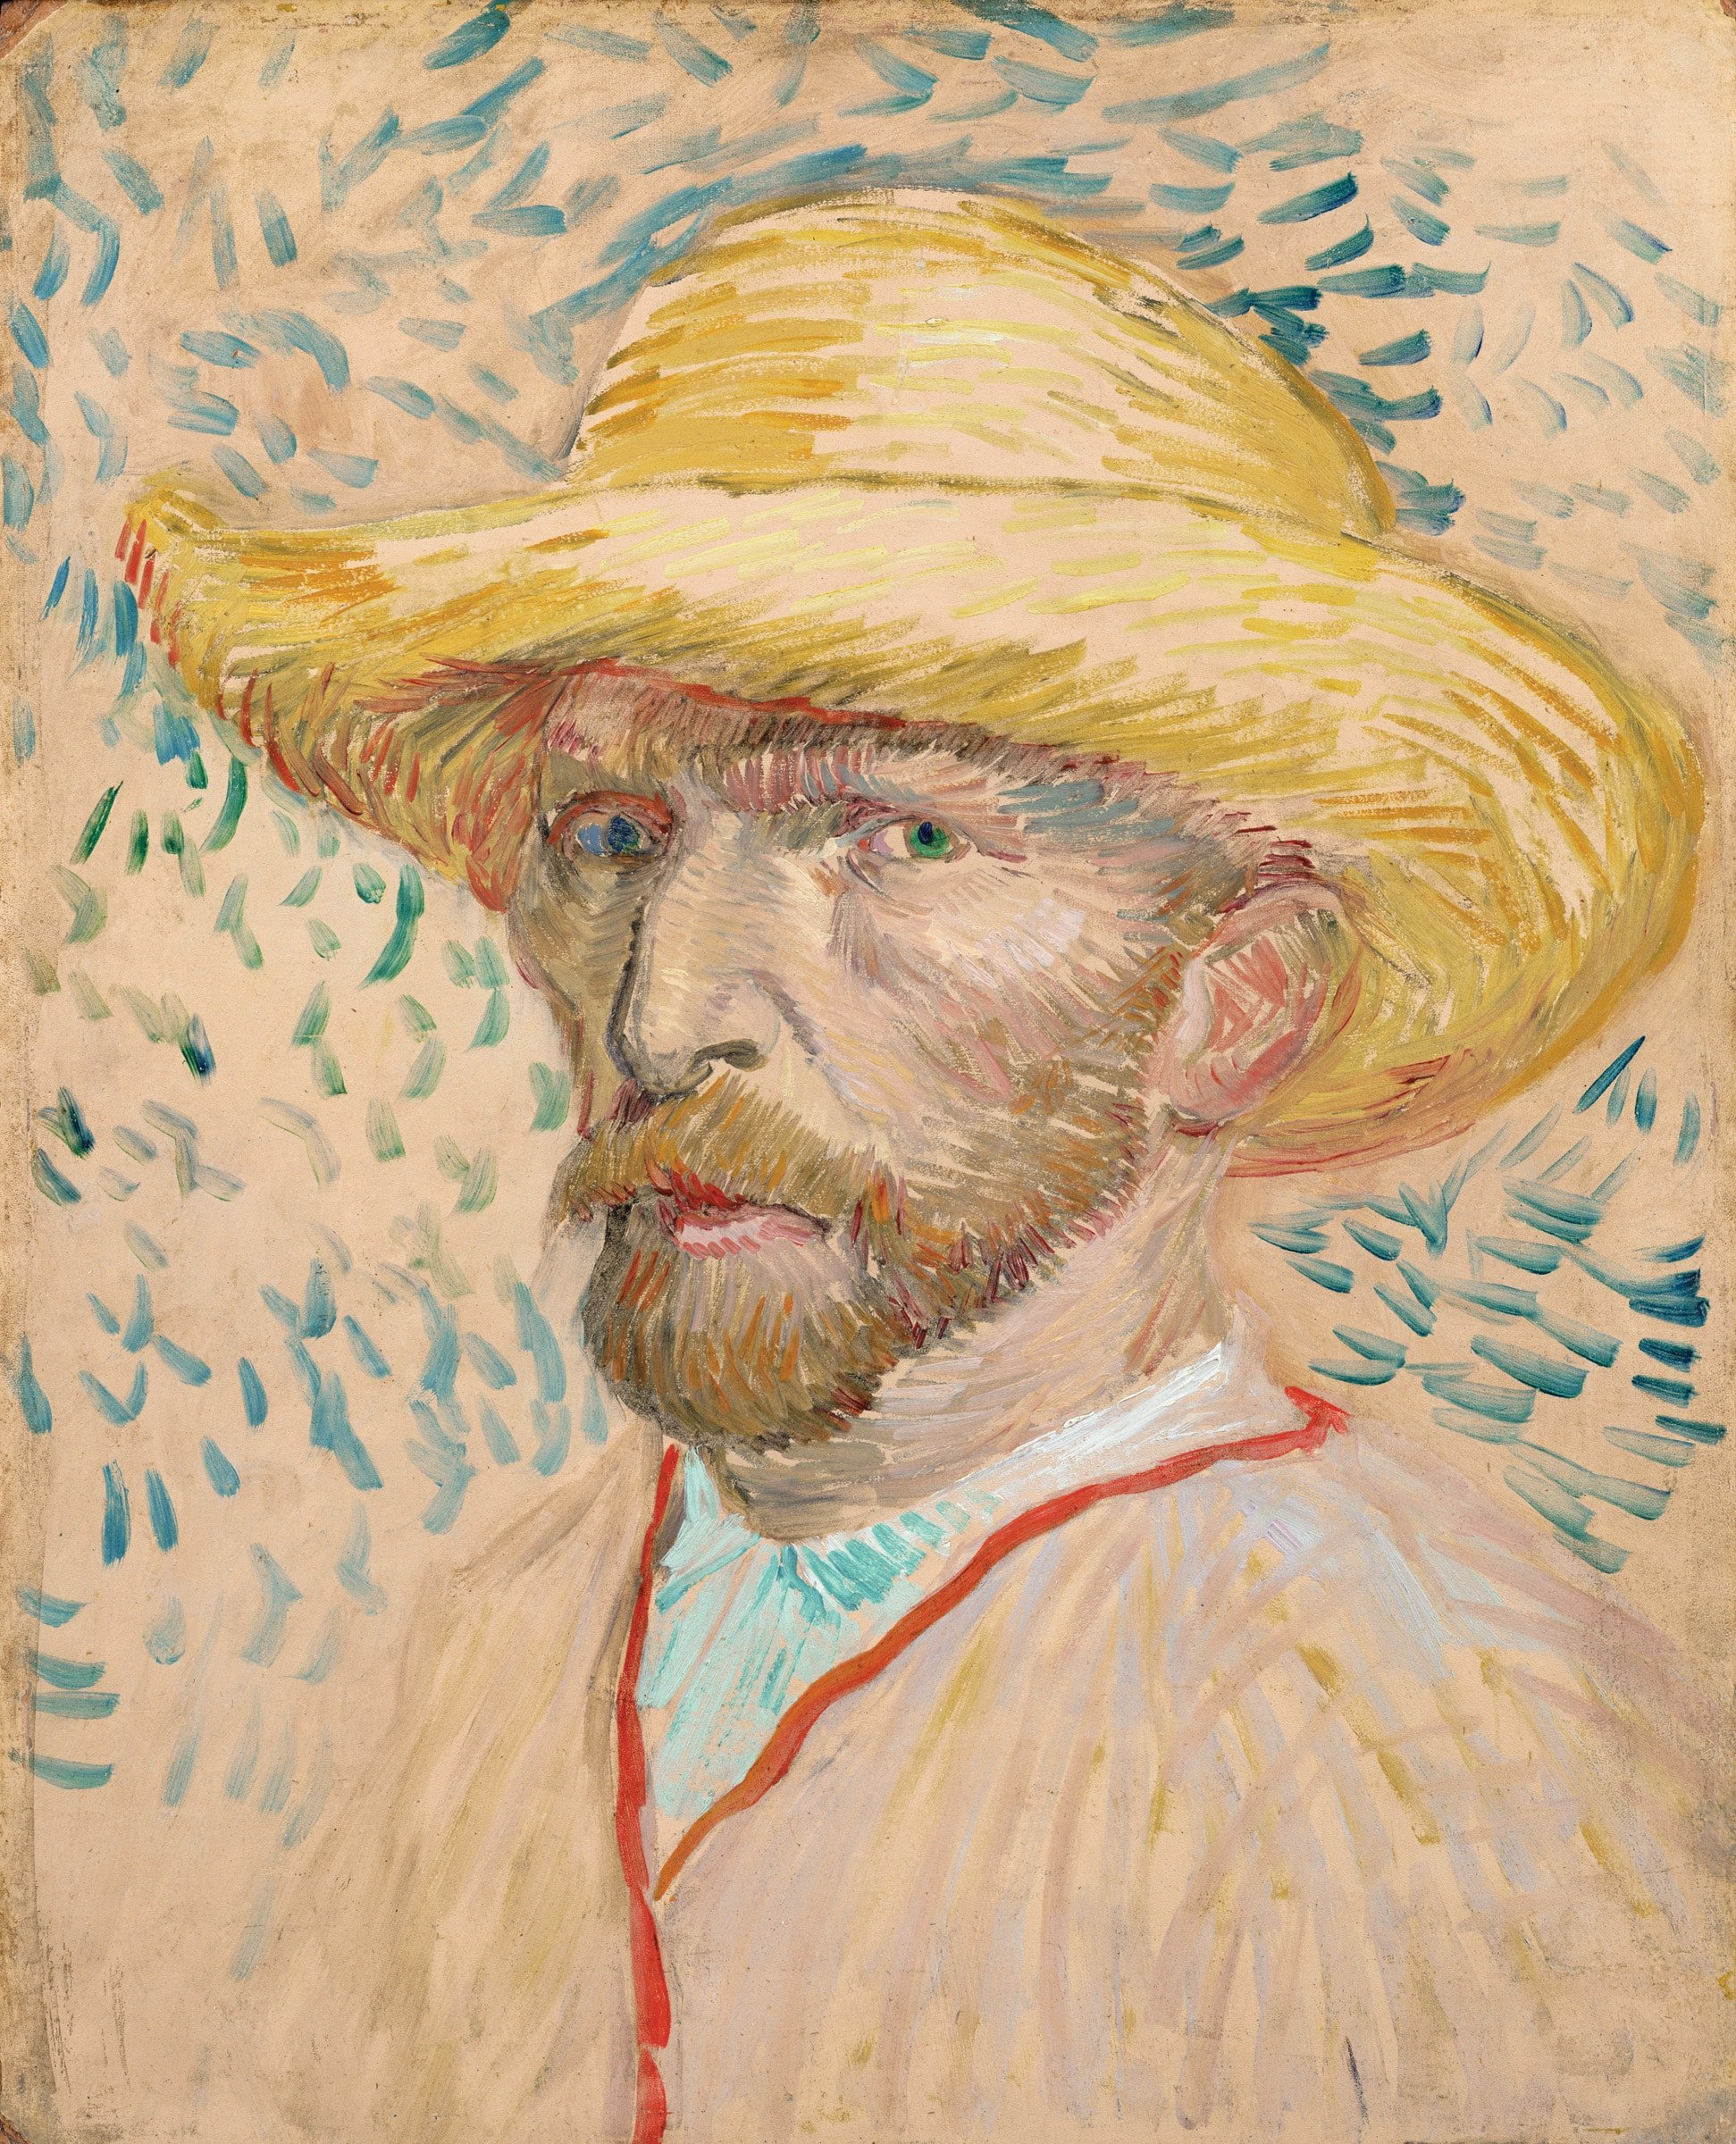 Becoming Van Gogh' & The Vincent cocktail BoulderLocavore.com